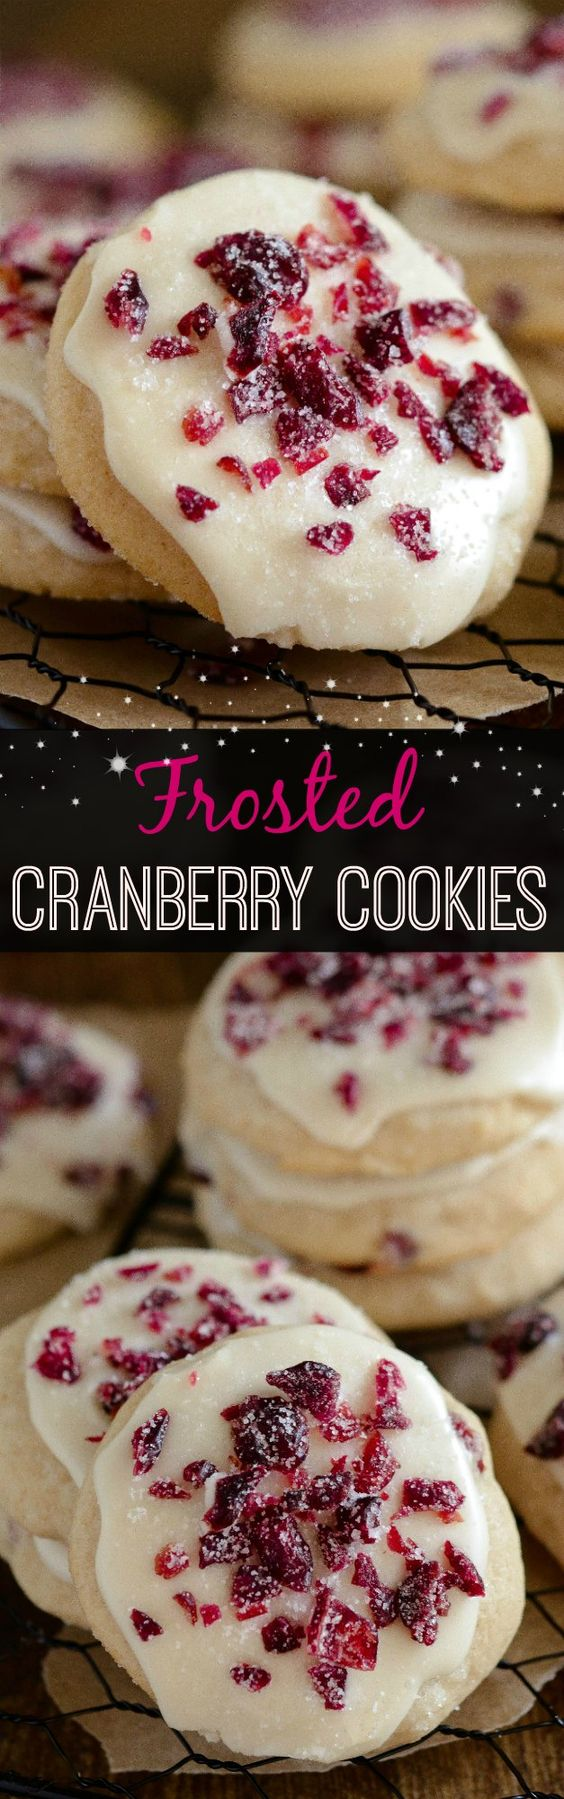 Frosted Cranberry Cookies - sweet soft cranberry shortbread cookies with vanilla cranberry icing!: